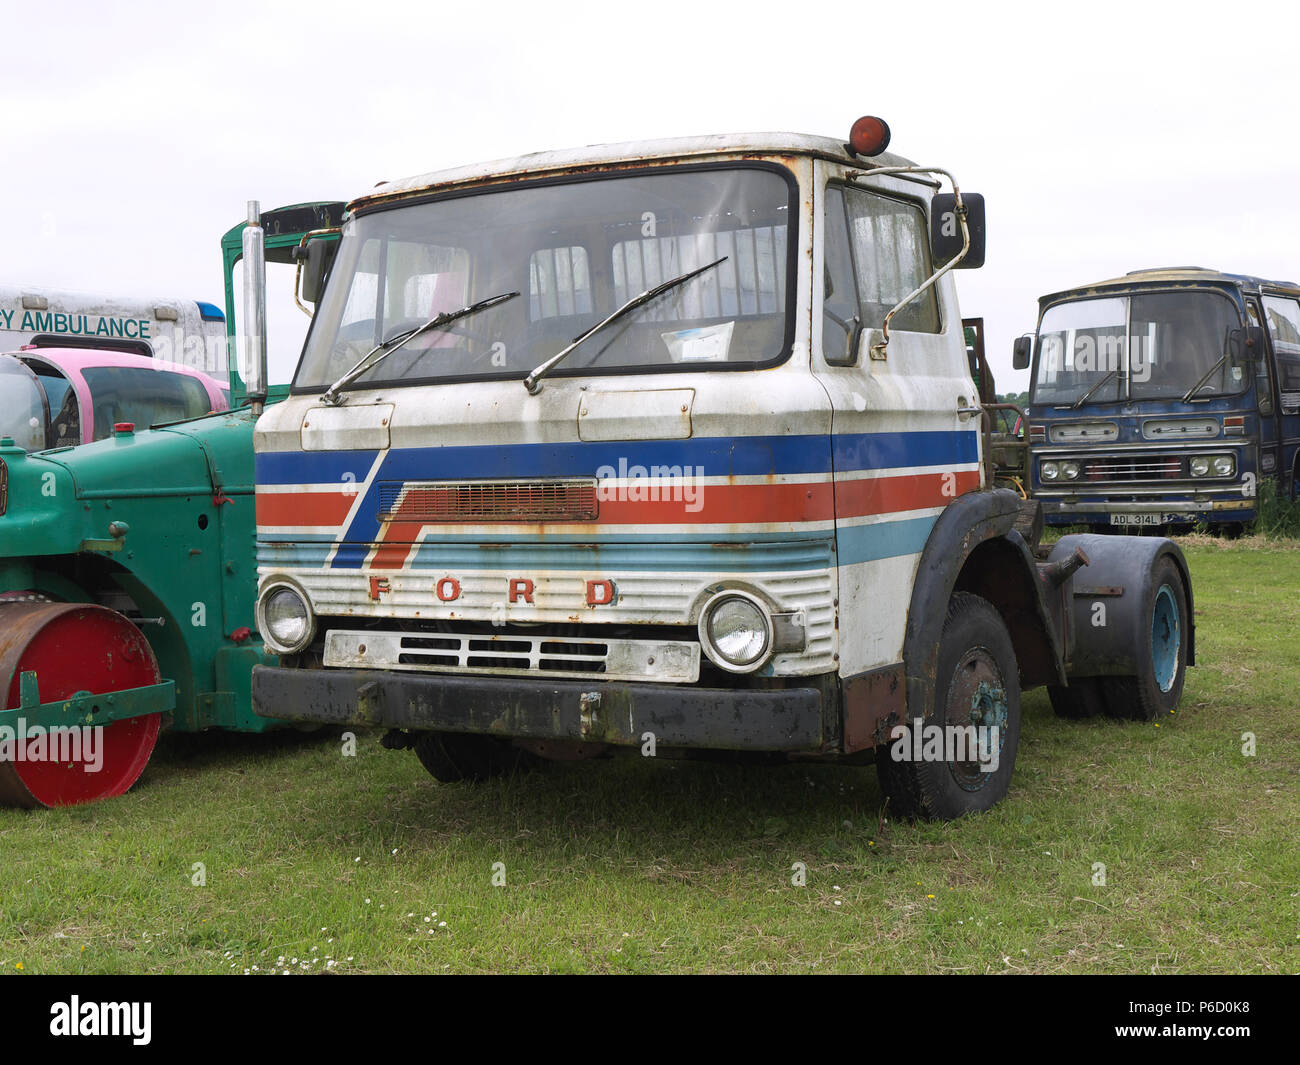 Ford lorry cab in need of tlc at Fir Park Wings and Wheels show - Stock Image